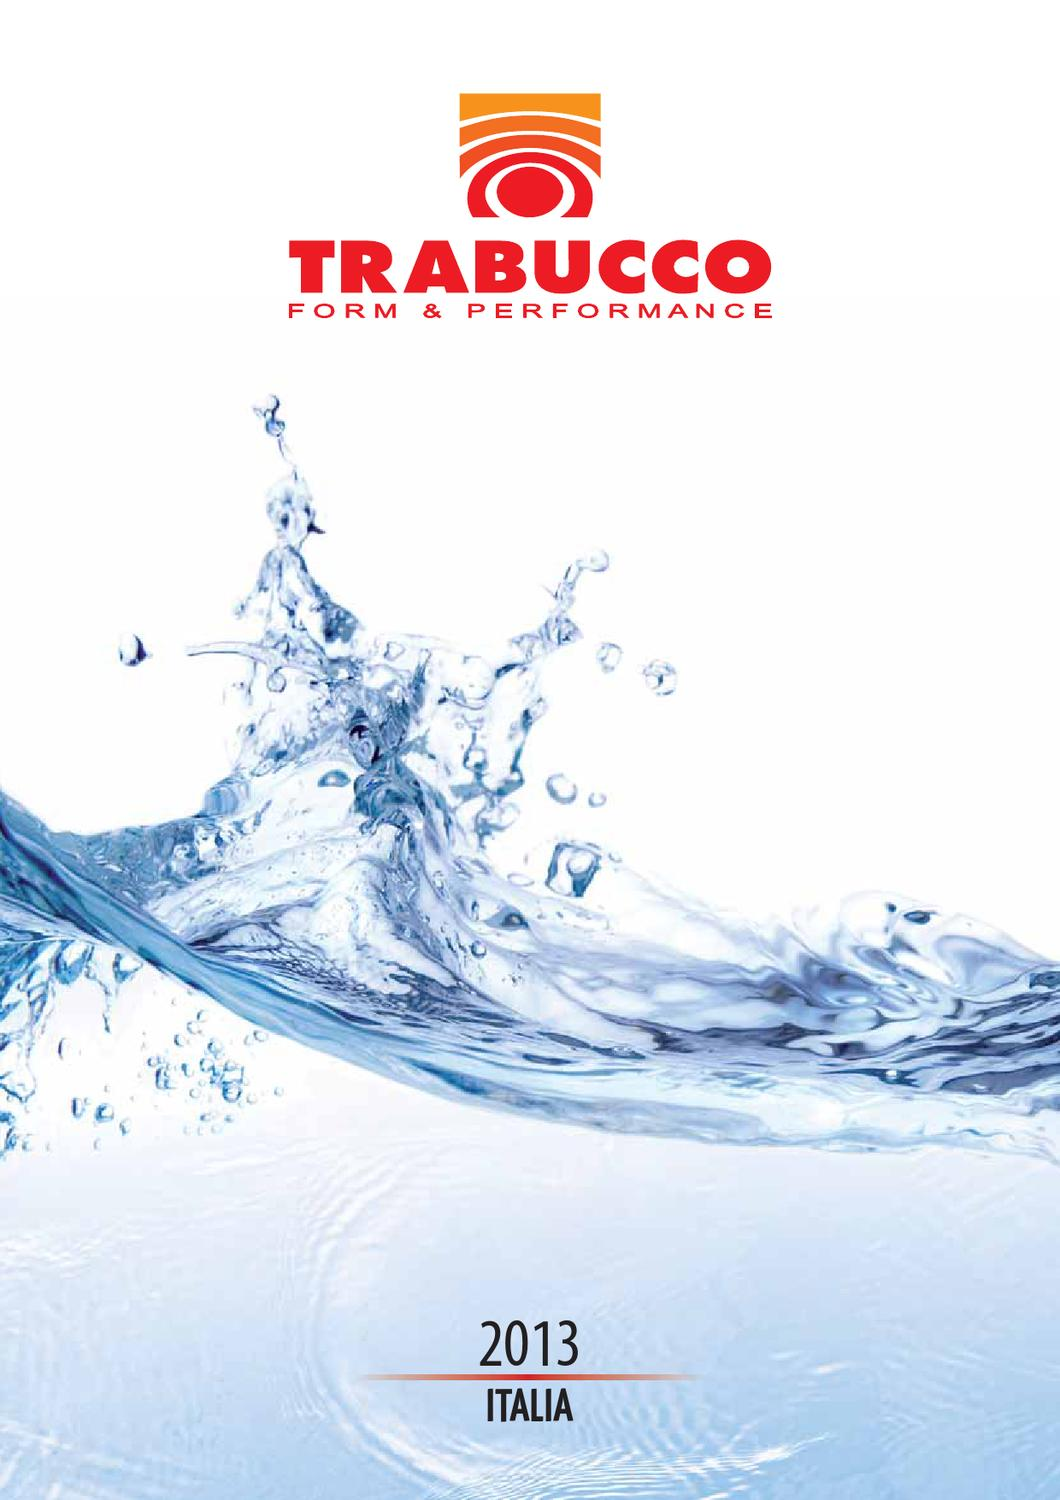 Catalogo Trabucco Fishing 2013 by Trabucco Fishing Diffusion - issuu a6be7d013773